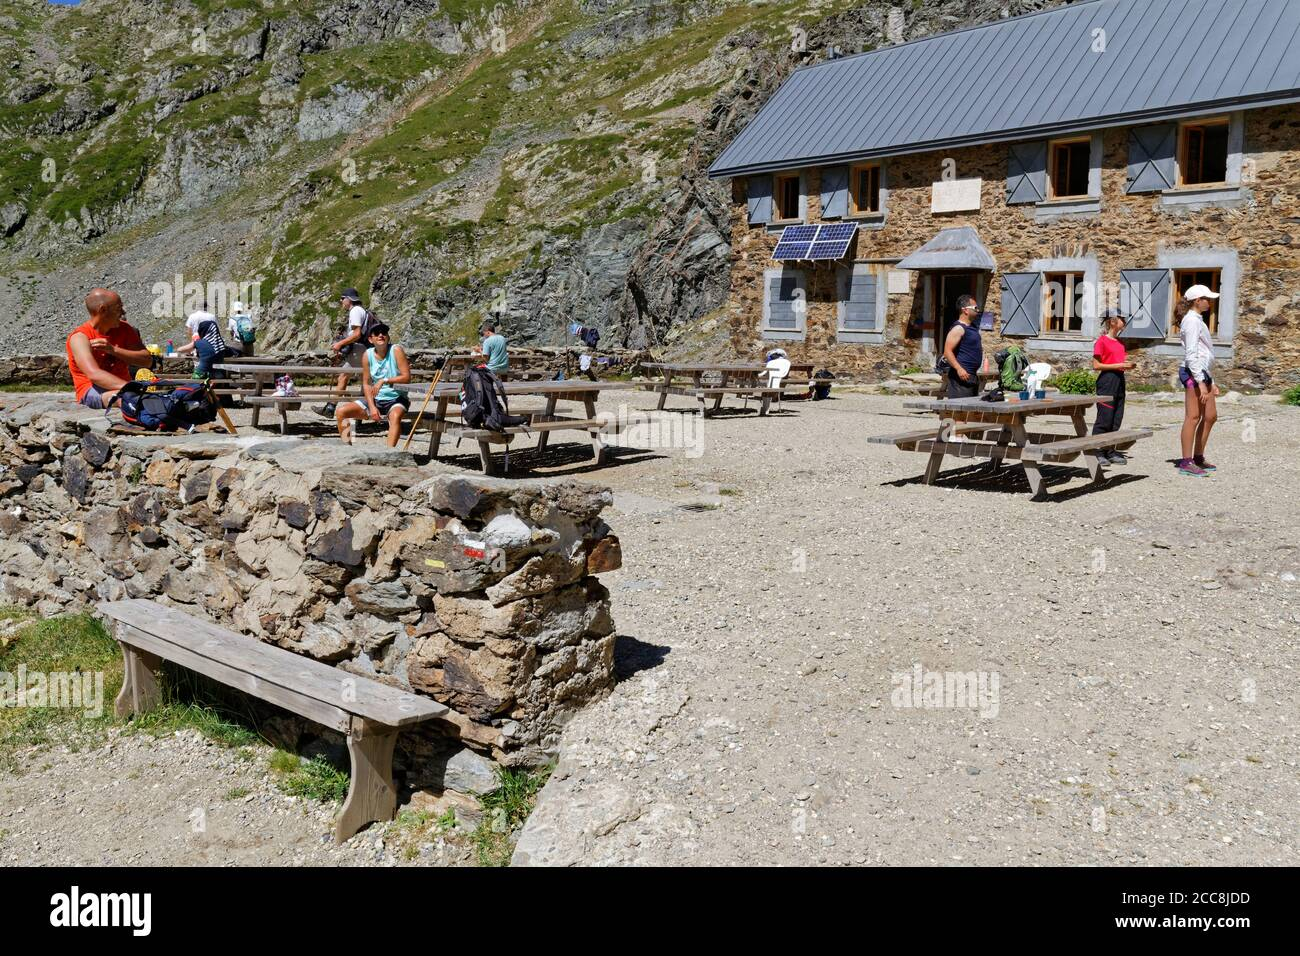 LA PRA, FRANCE, August 6, 2020 : A group of hikers rest for a while at the mountain refuge, with social distanciation respect. Stock Photo